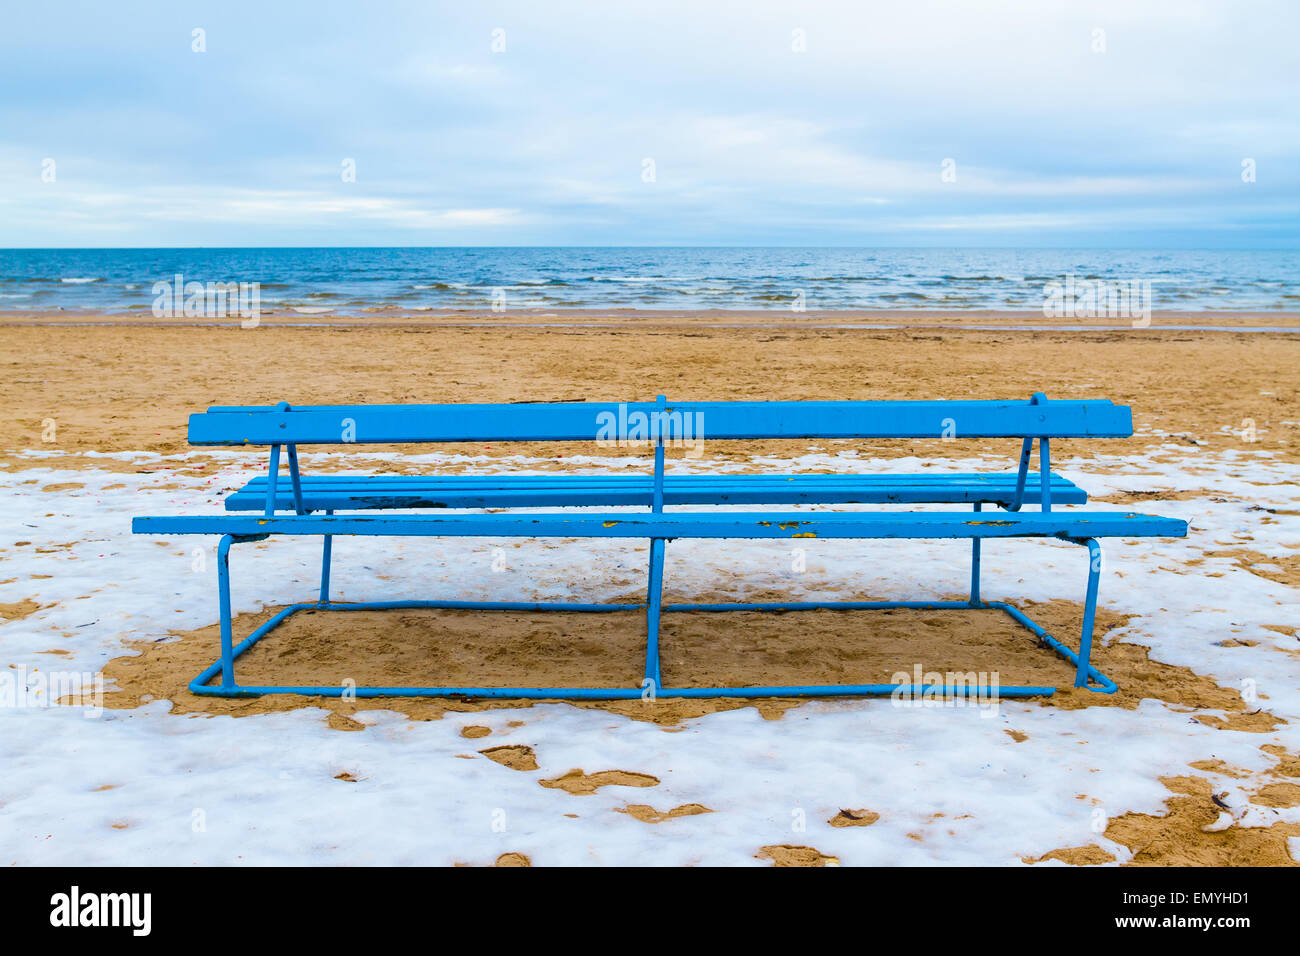 Winter view of a beach. Park bench on a winter beach. - Stock Image